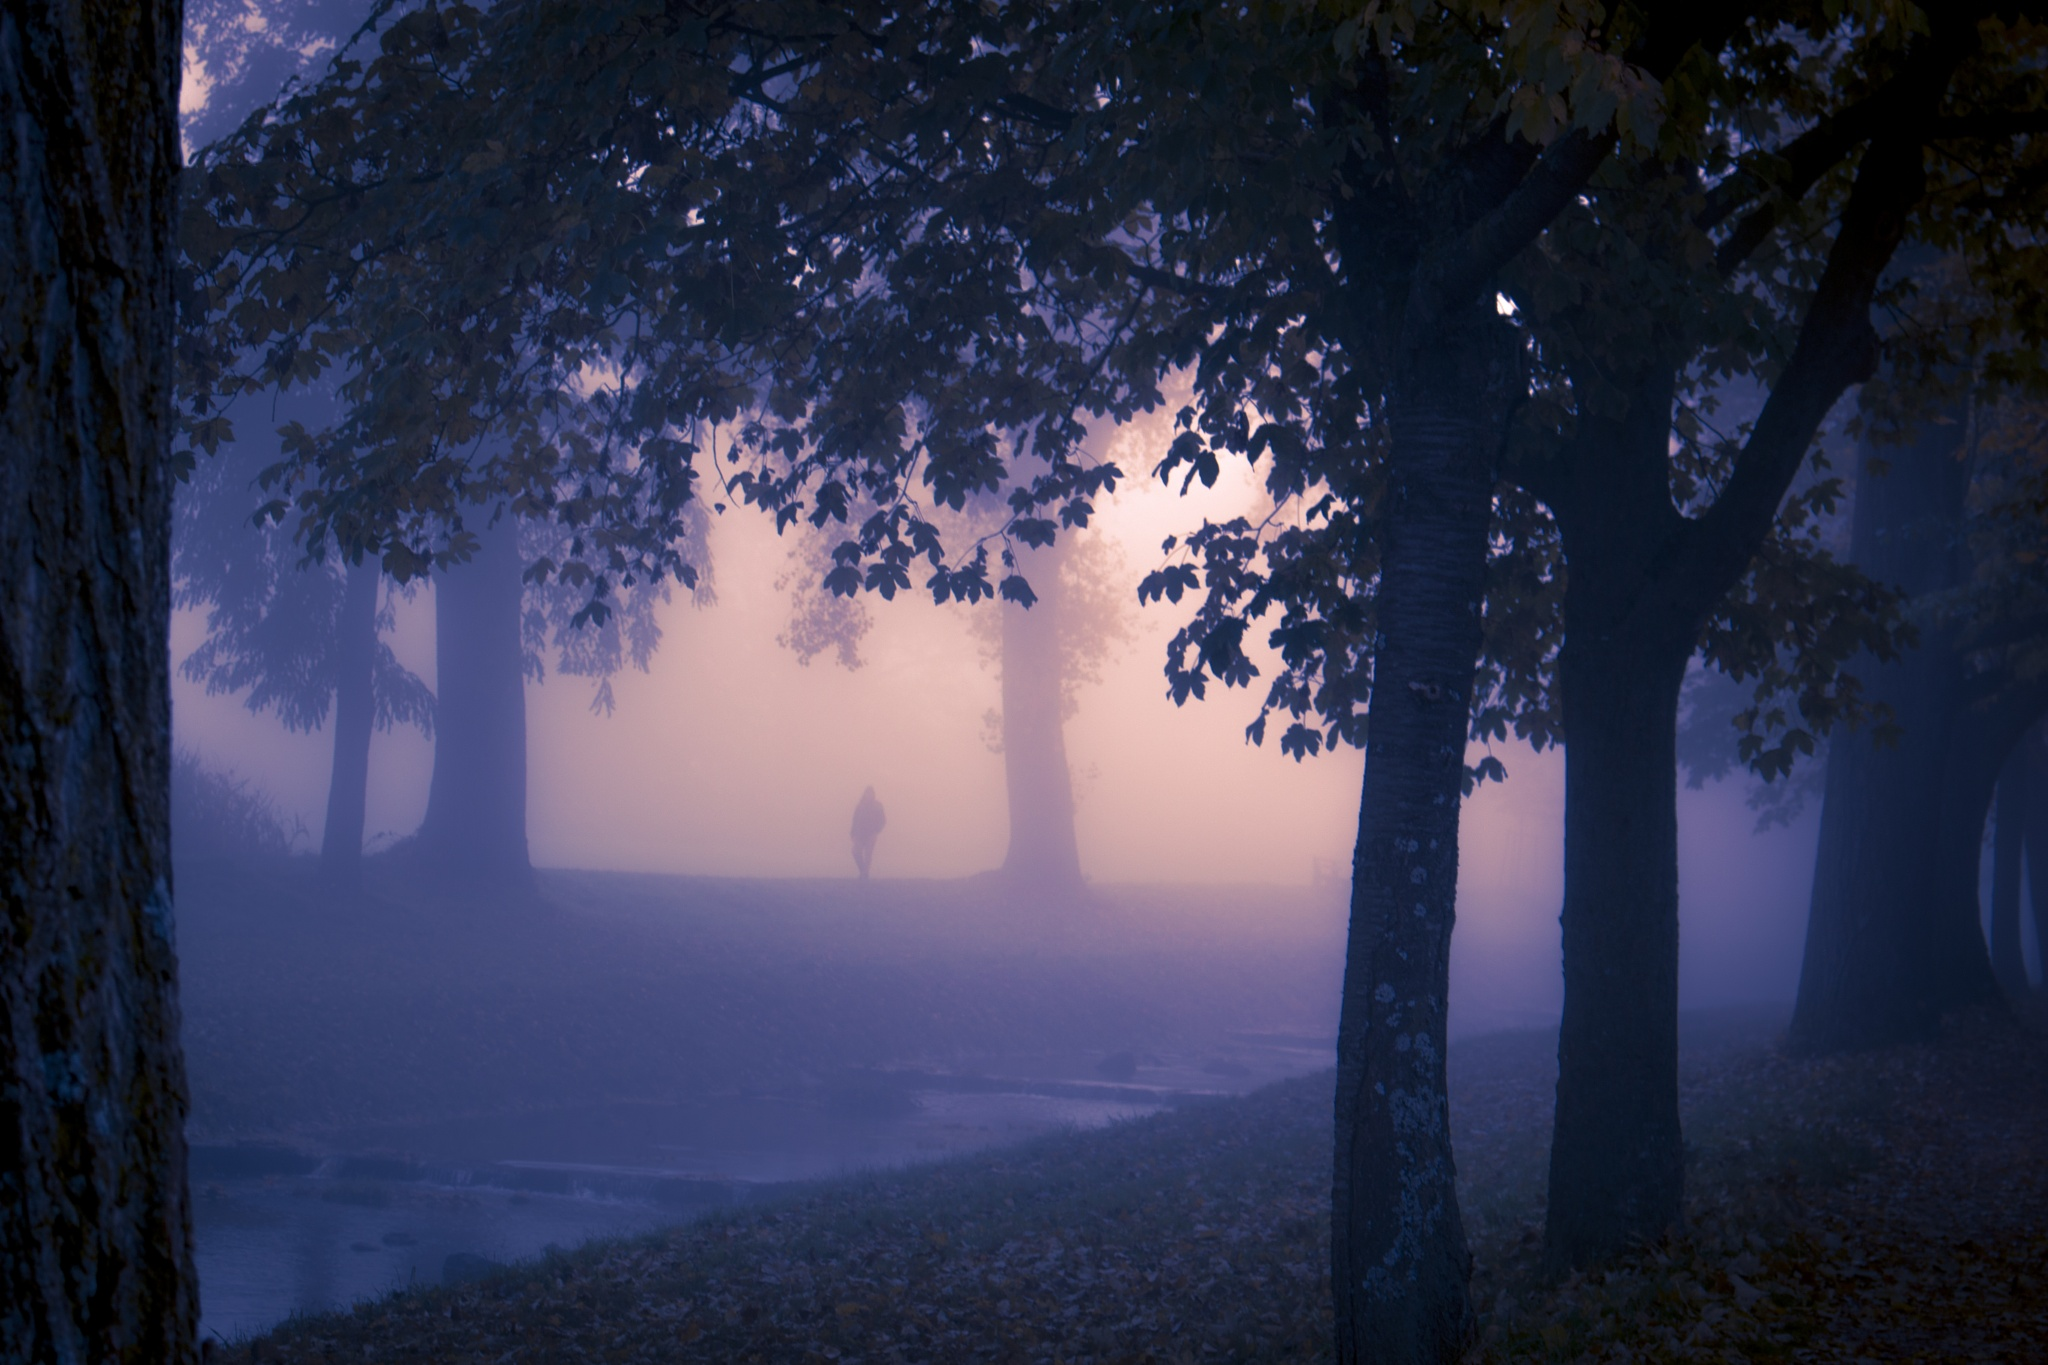 man in the mist by John Palmer